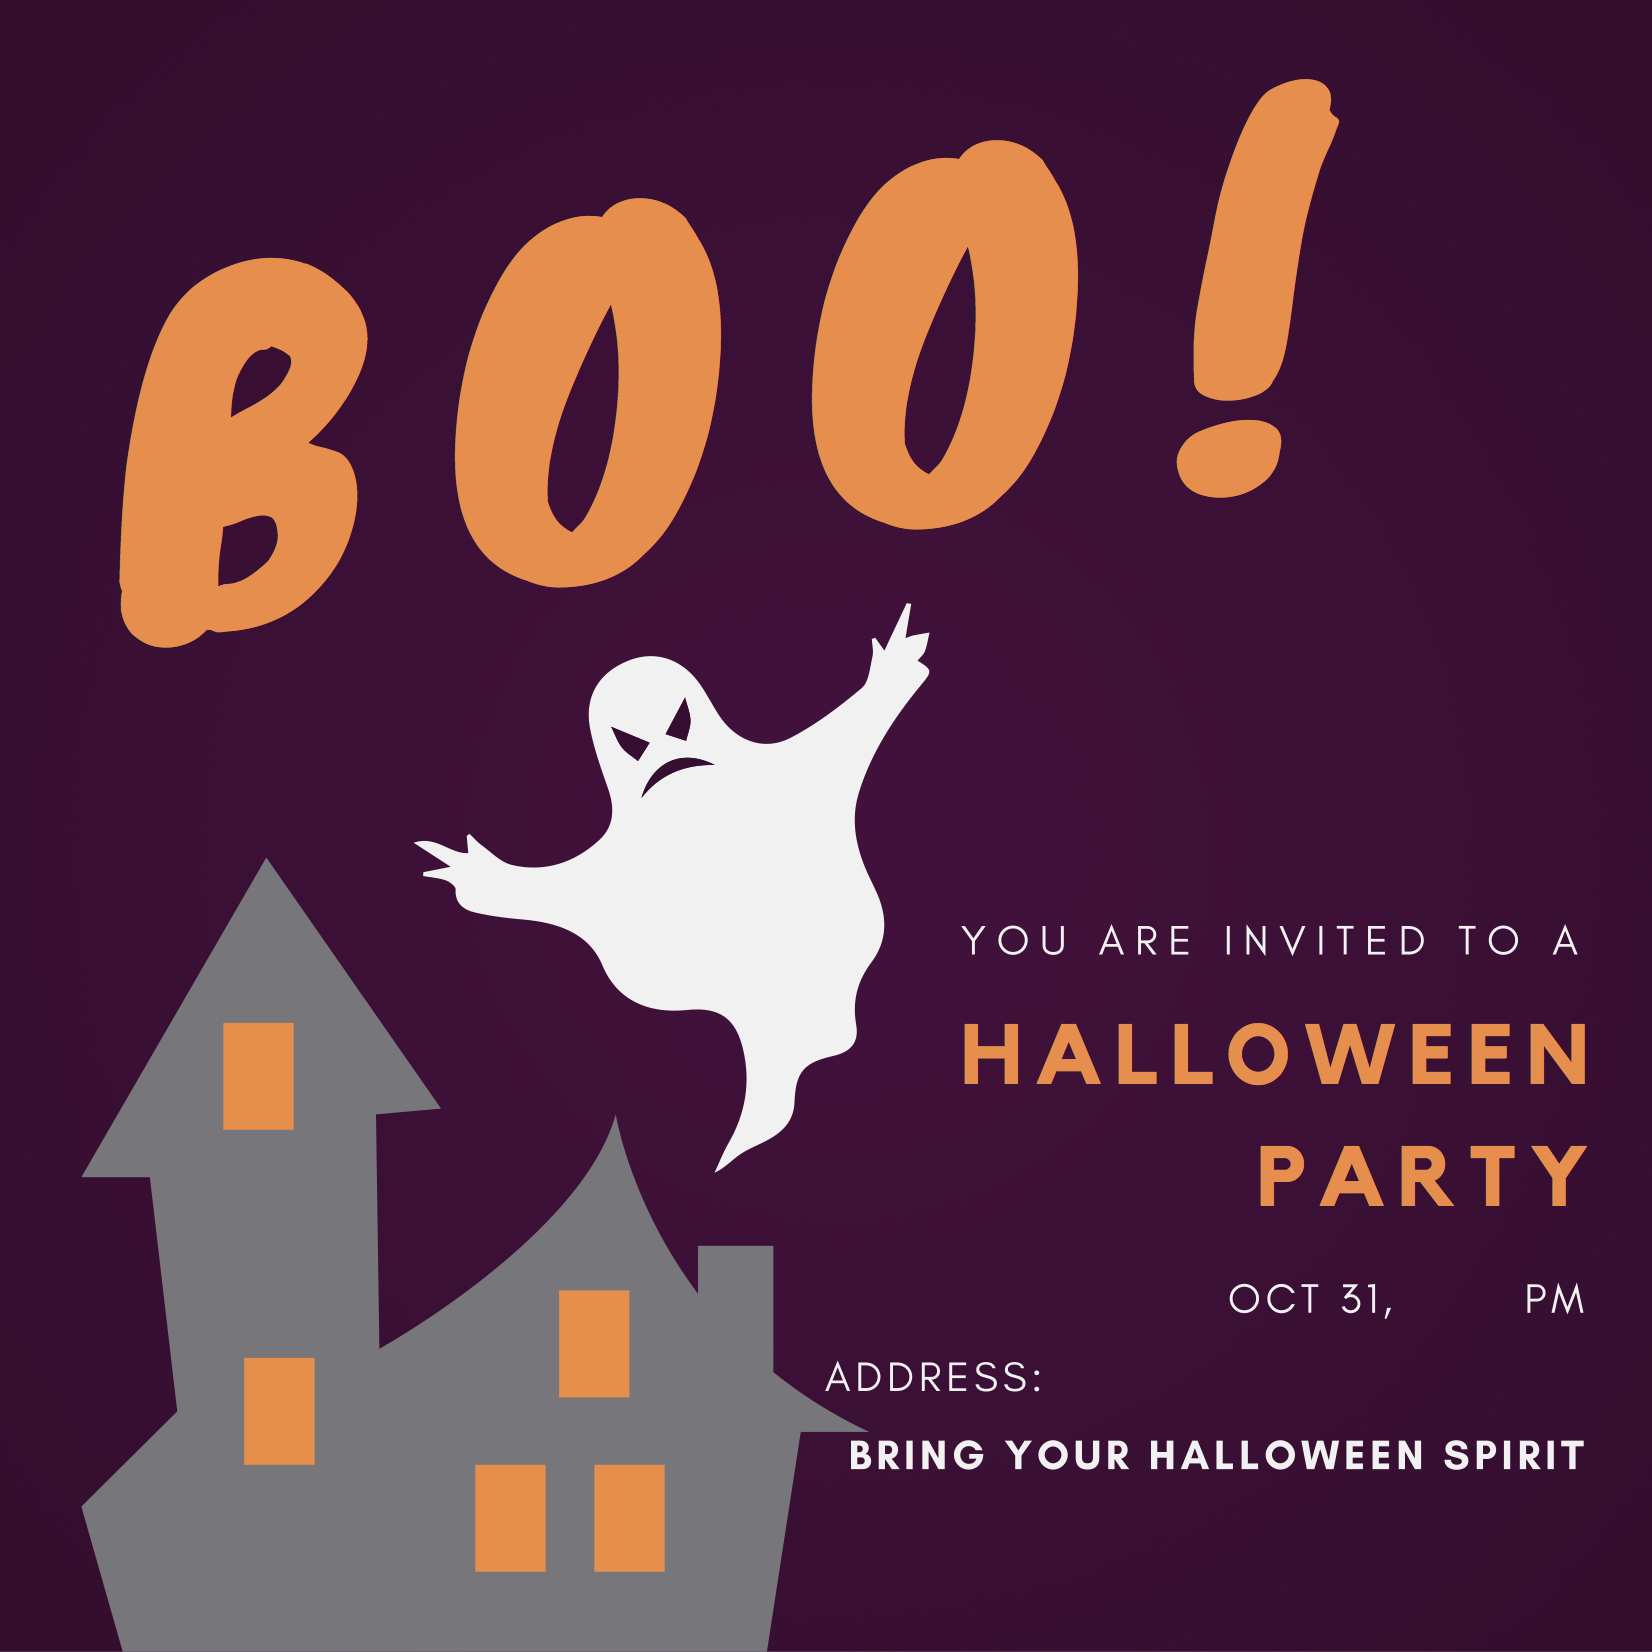 Haunted House Halloween Party Invitation. Bring Your Halloween Spirit.